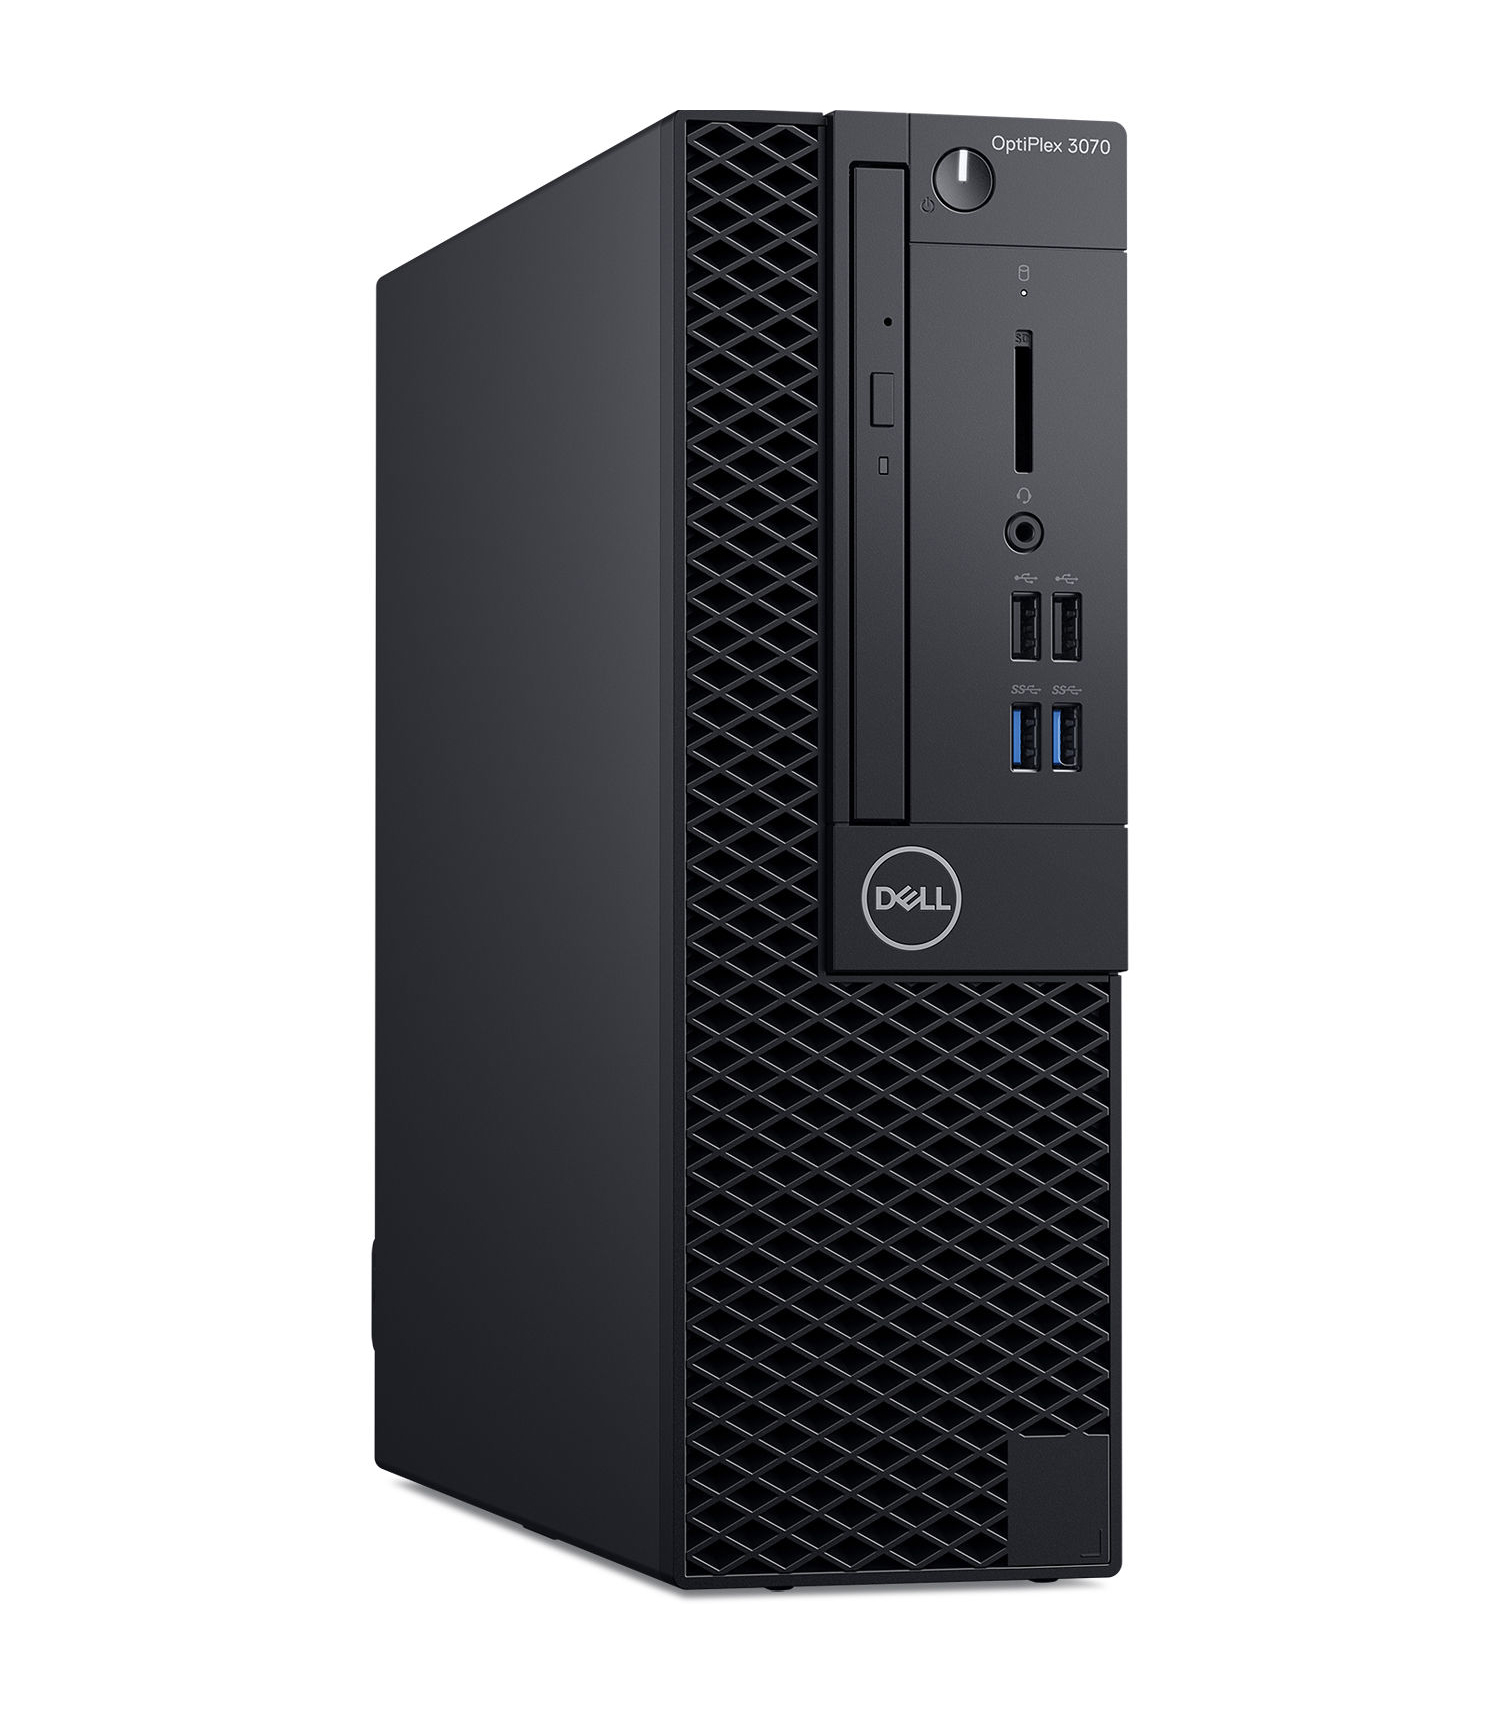 Dell OptiPlex 3070 Minitower I5